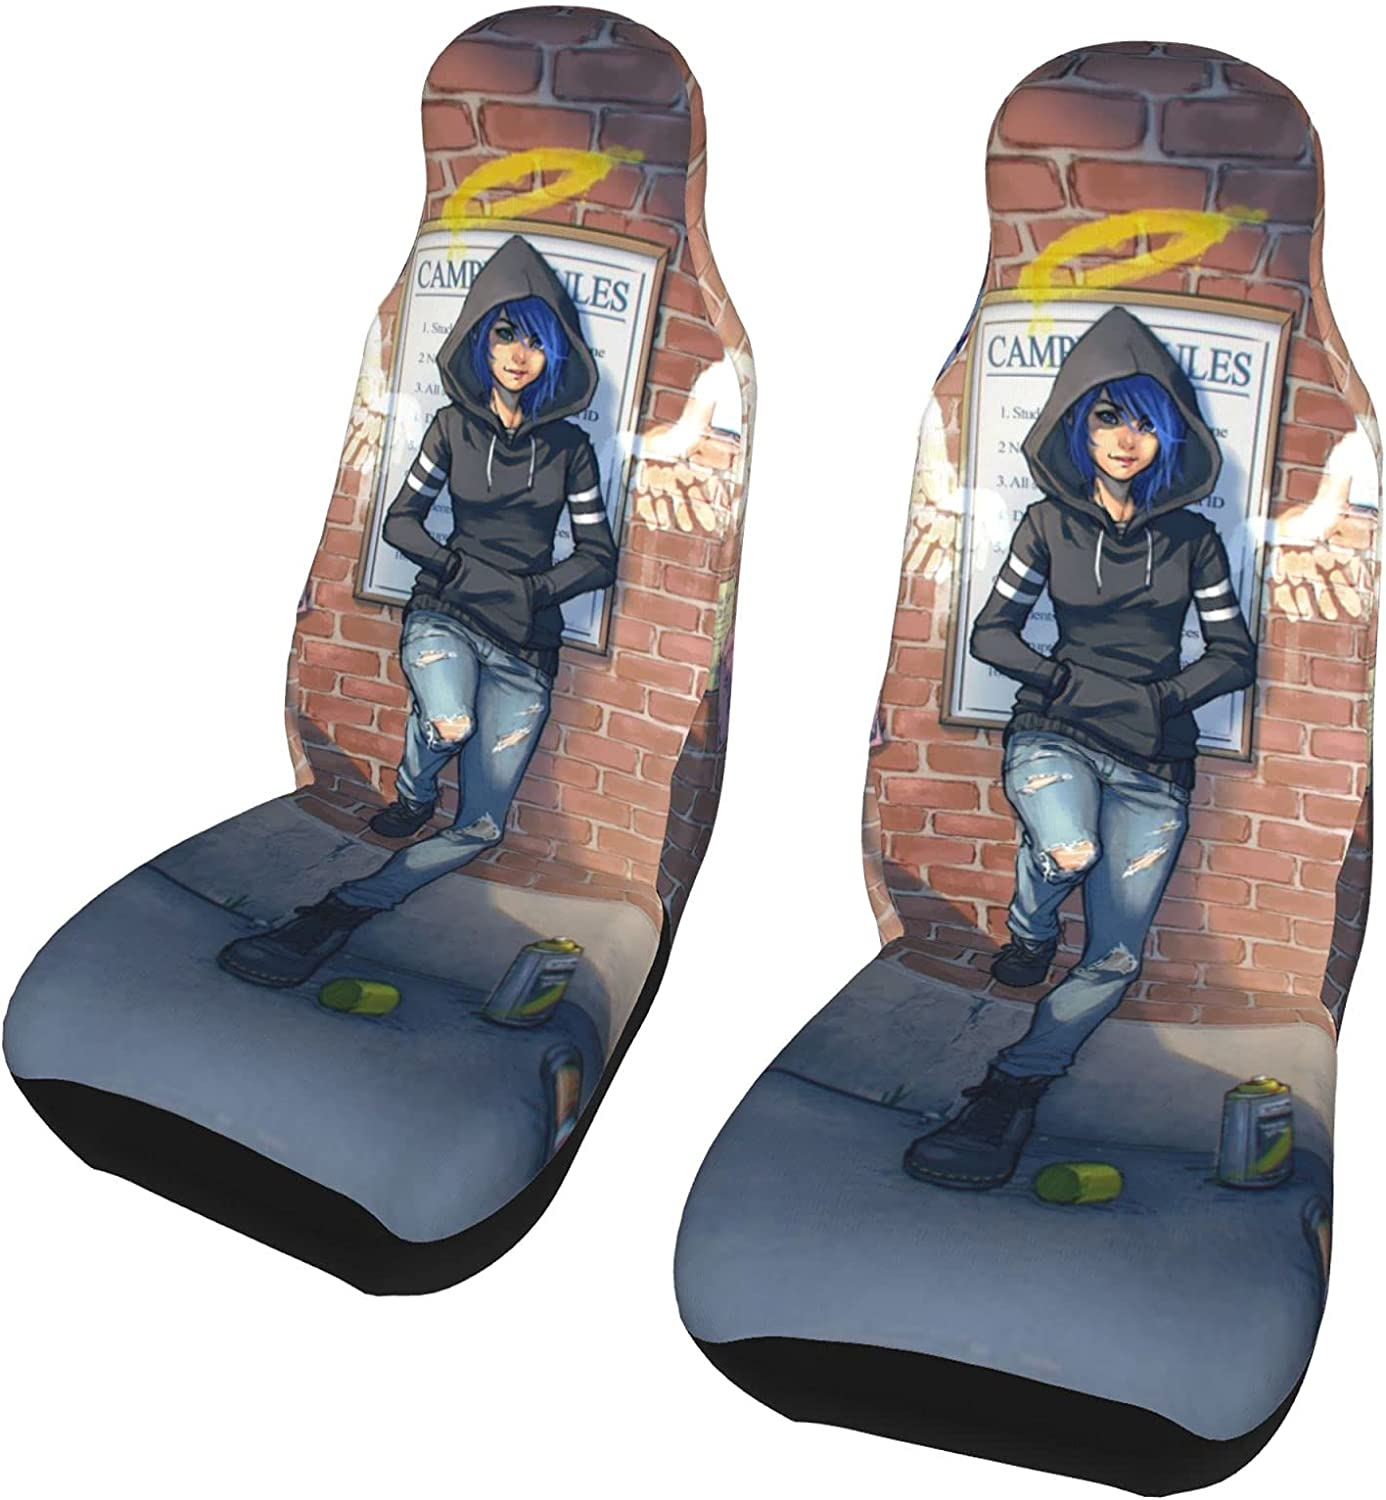 PictetW Angel Max 52% OFF Girl Ripped Jeans Car San Diego Mall Seat Universal Cozy Ca Cover